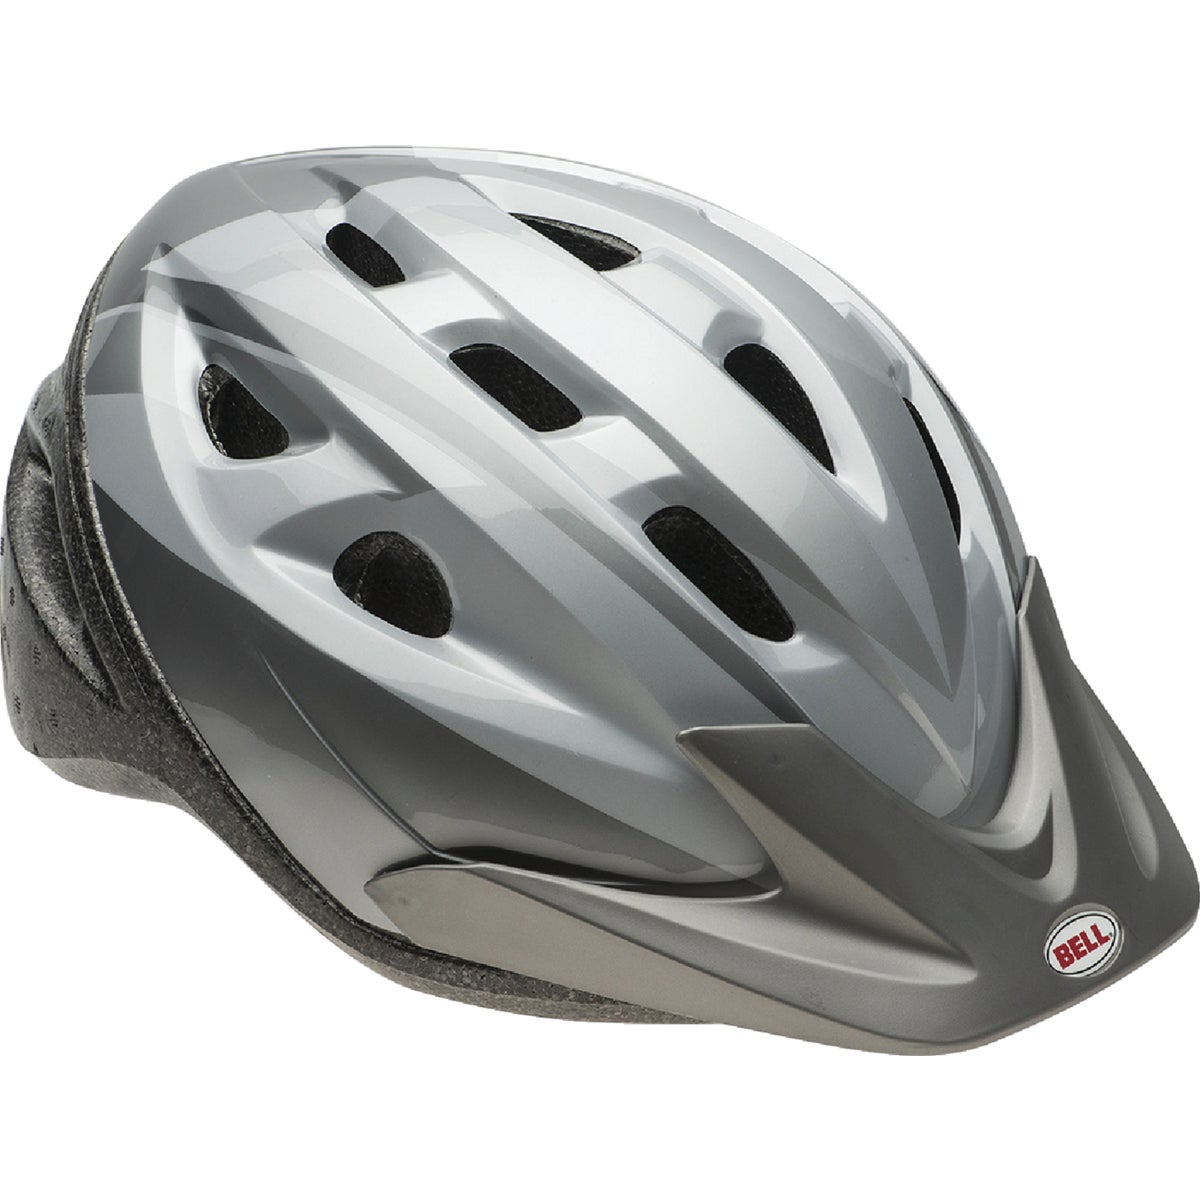 14+ M/L ADULT HELMET - 7021145 by Bell Sports